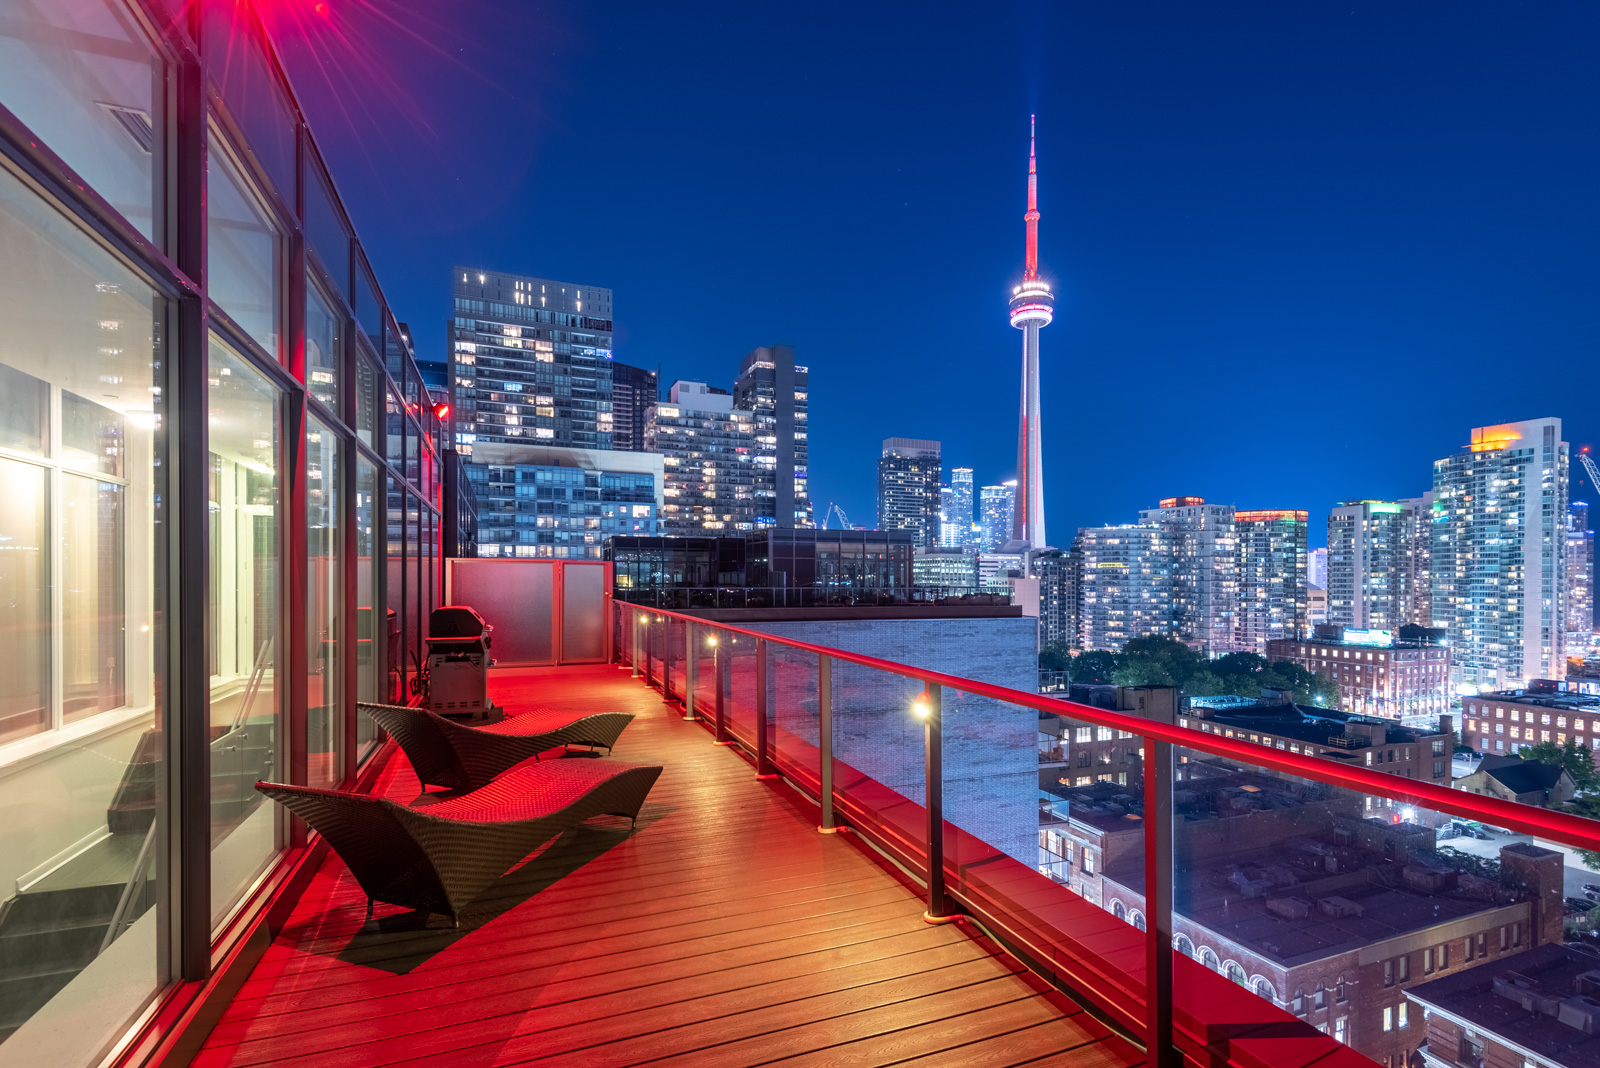 Photo of CN Tower and Toronto at night from Victory Lofts Penthouse Suite in 478 King St W Toronto.